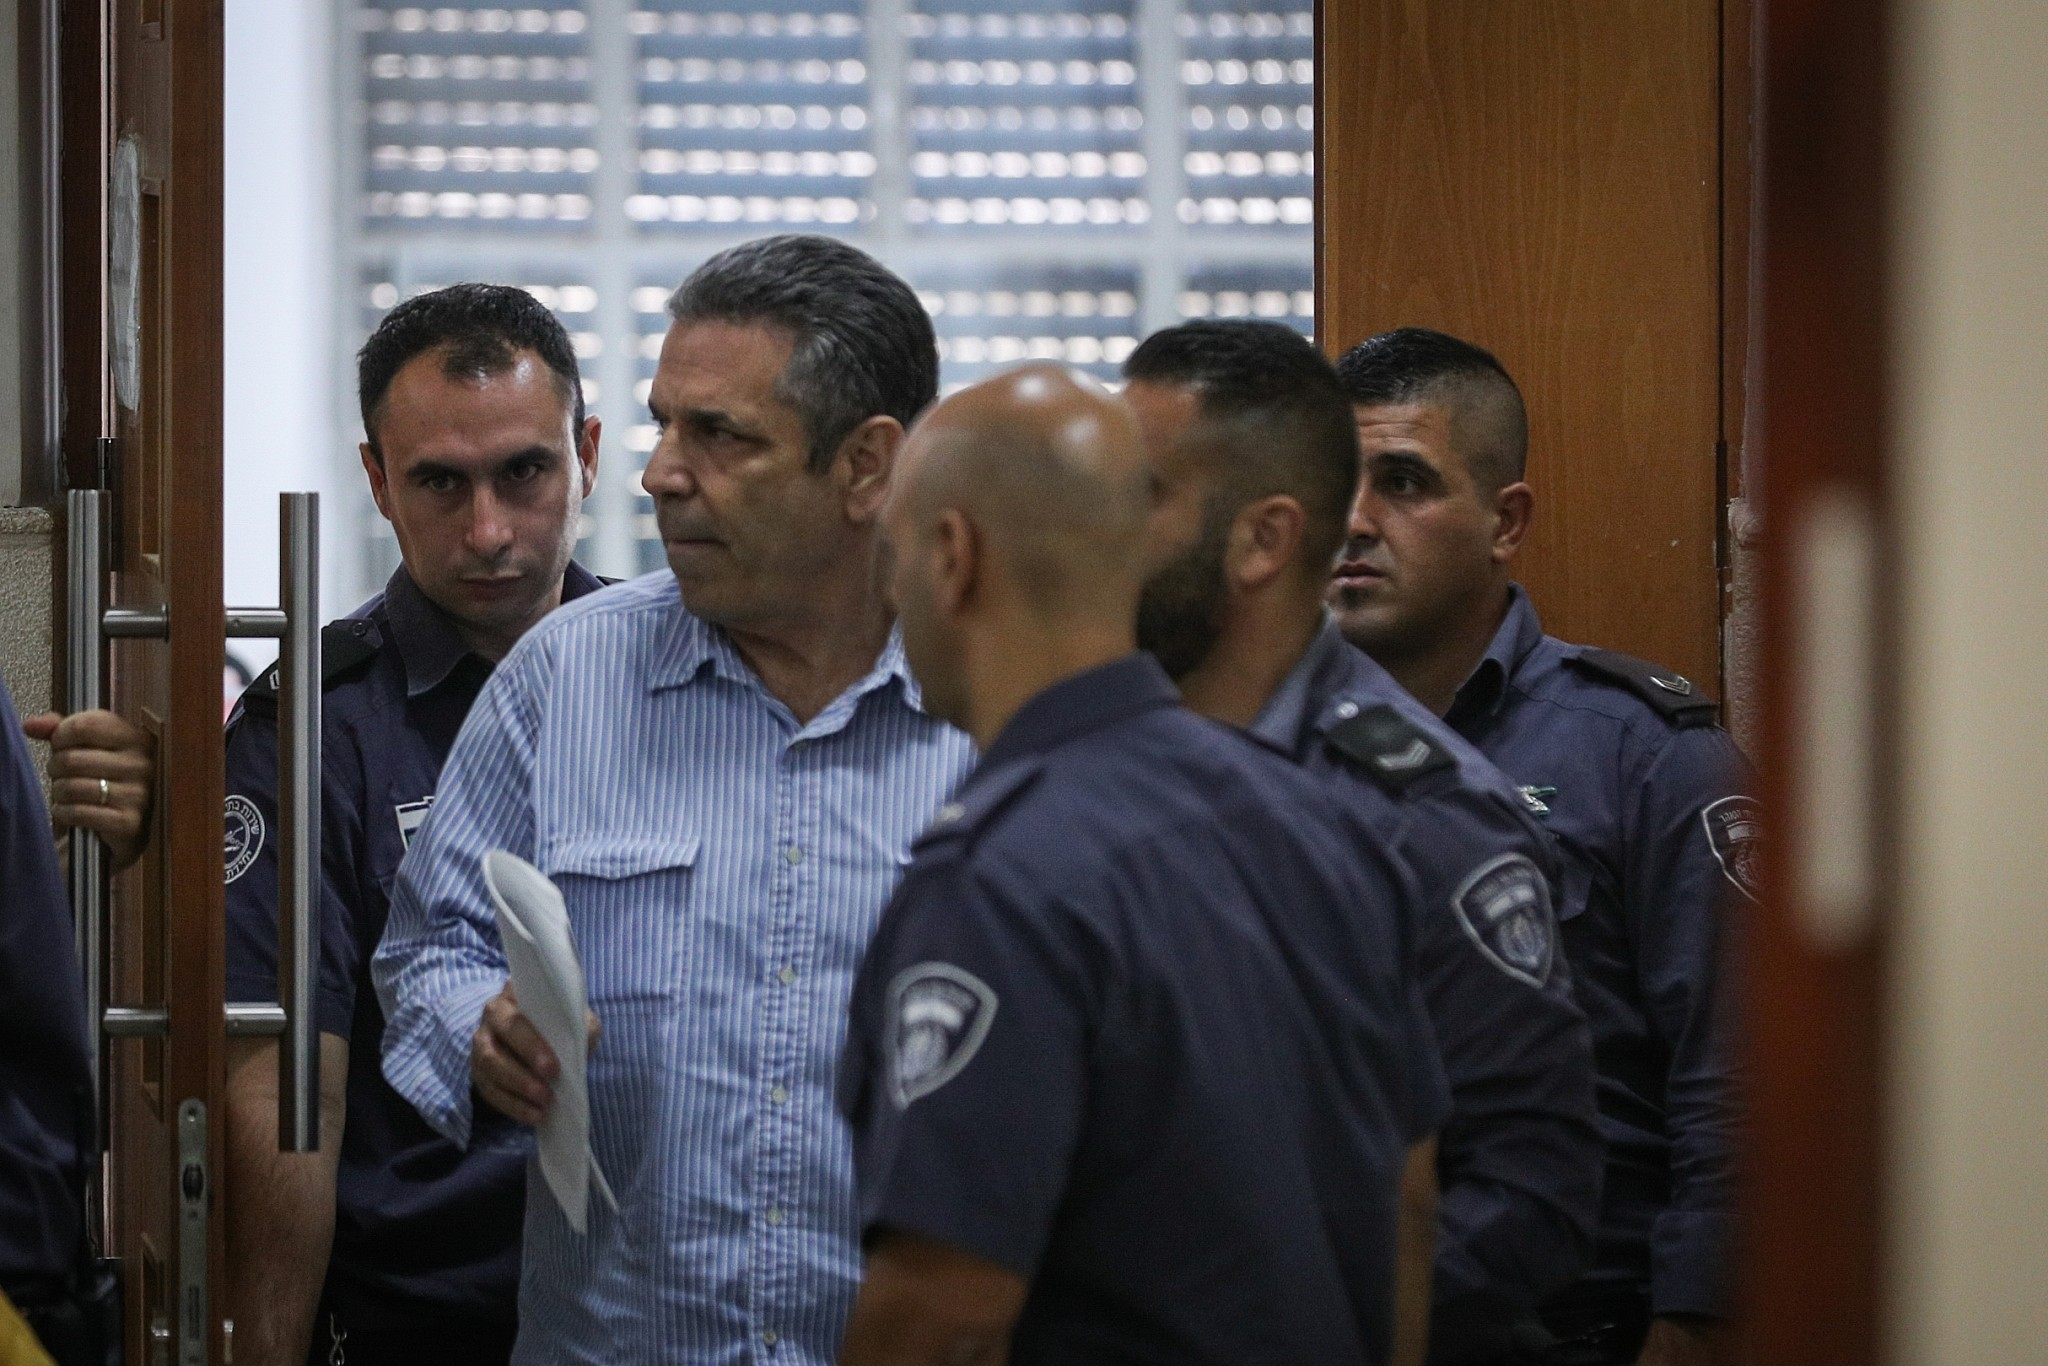 Former cabinet minister Gonen Segev convicted of spying for Iran